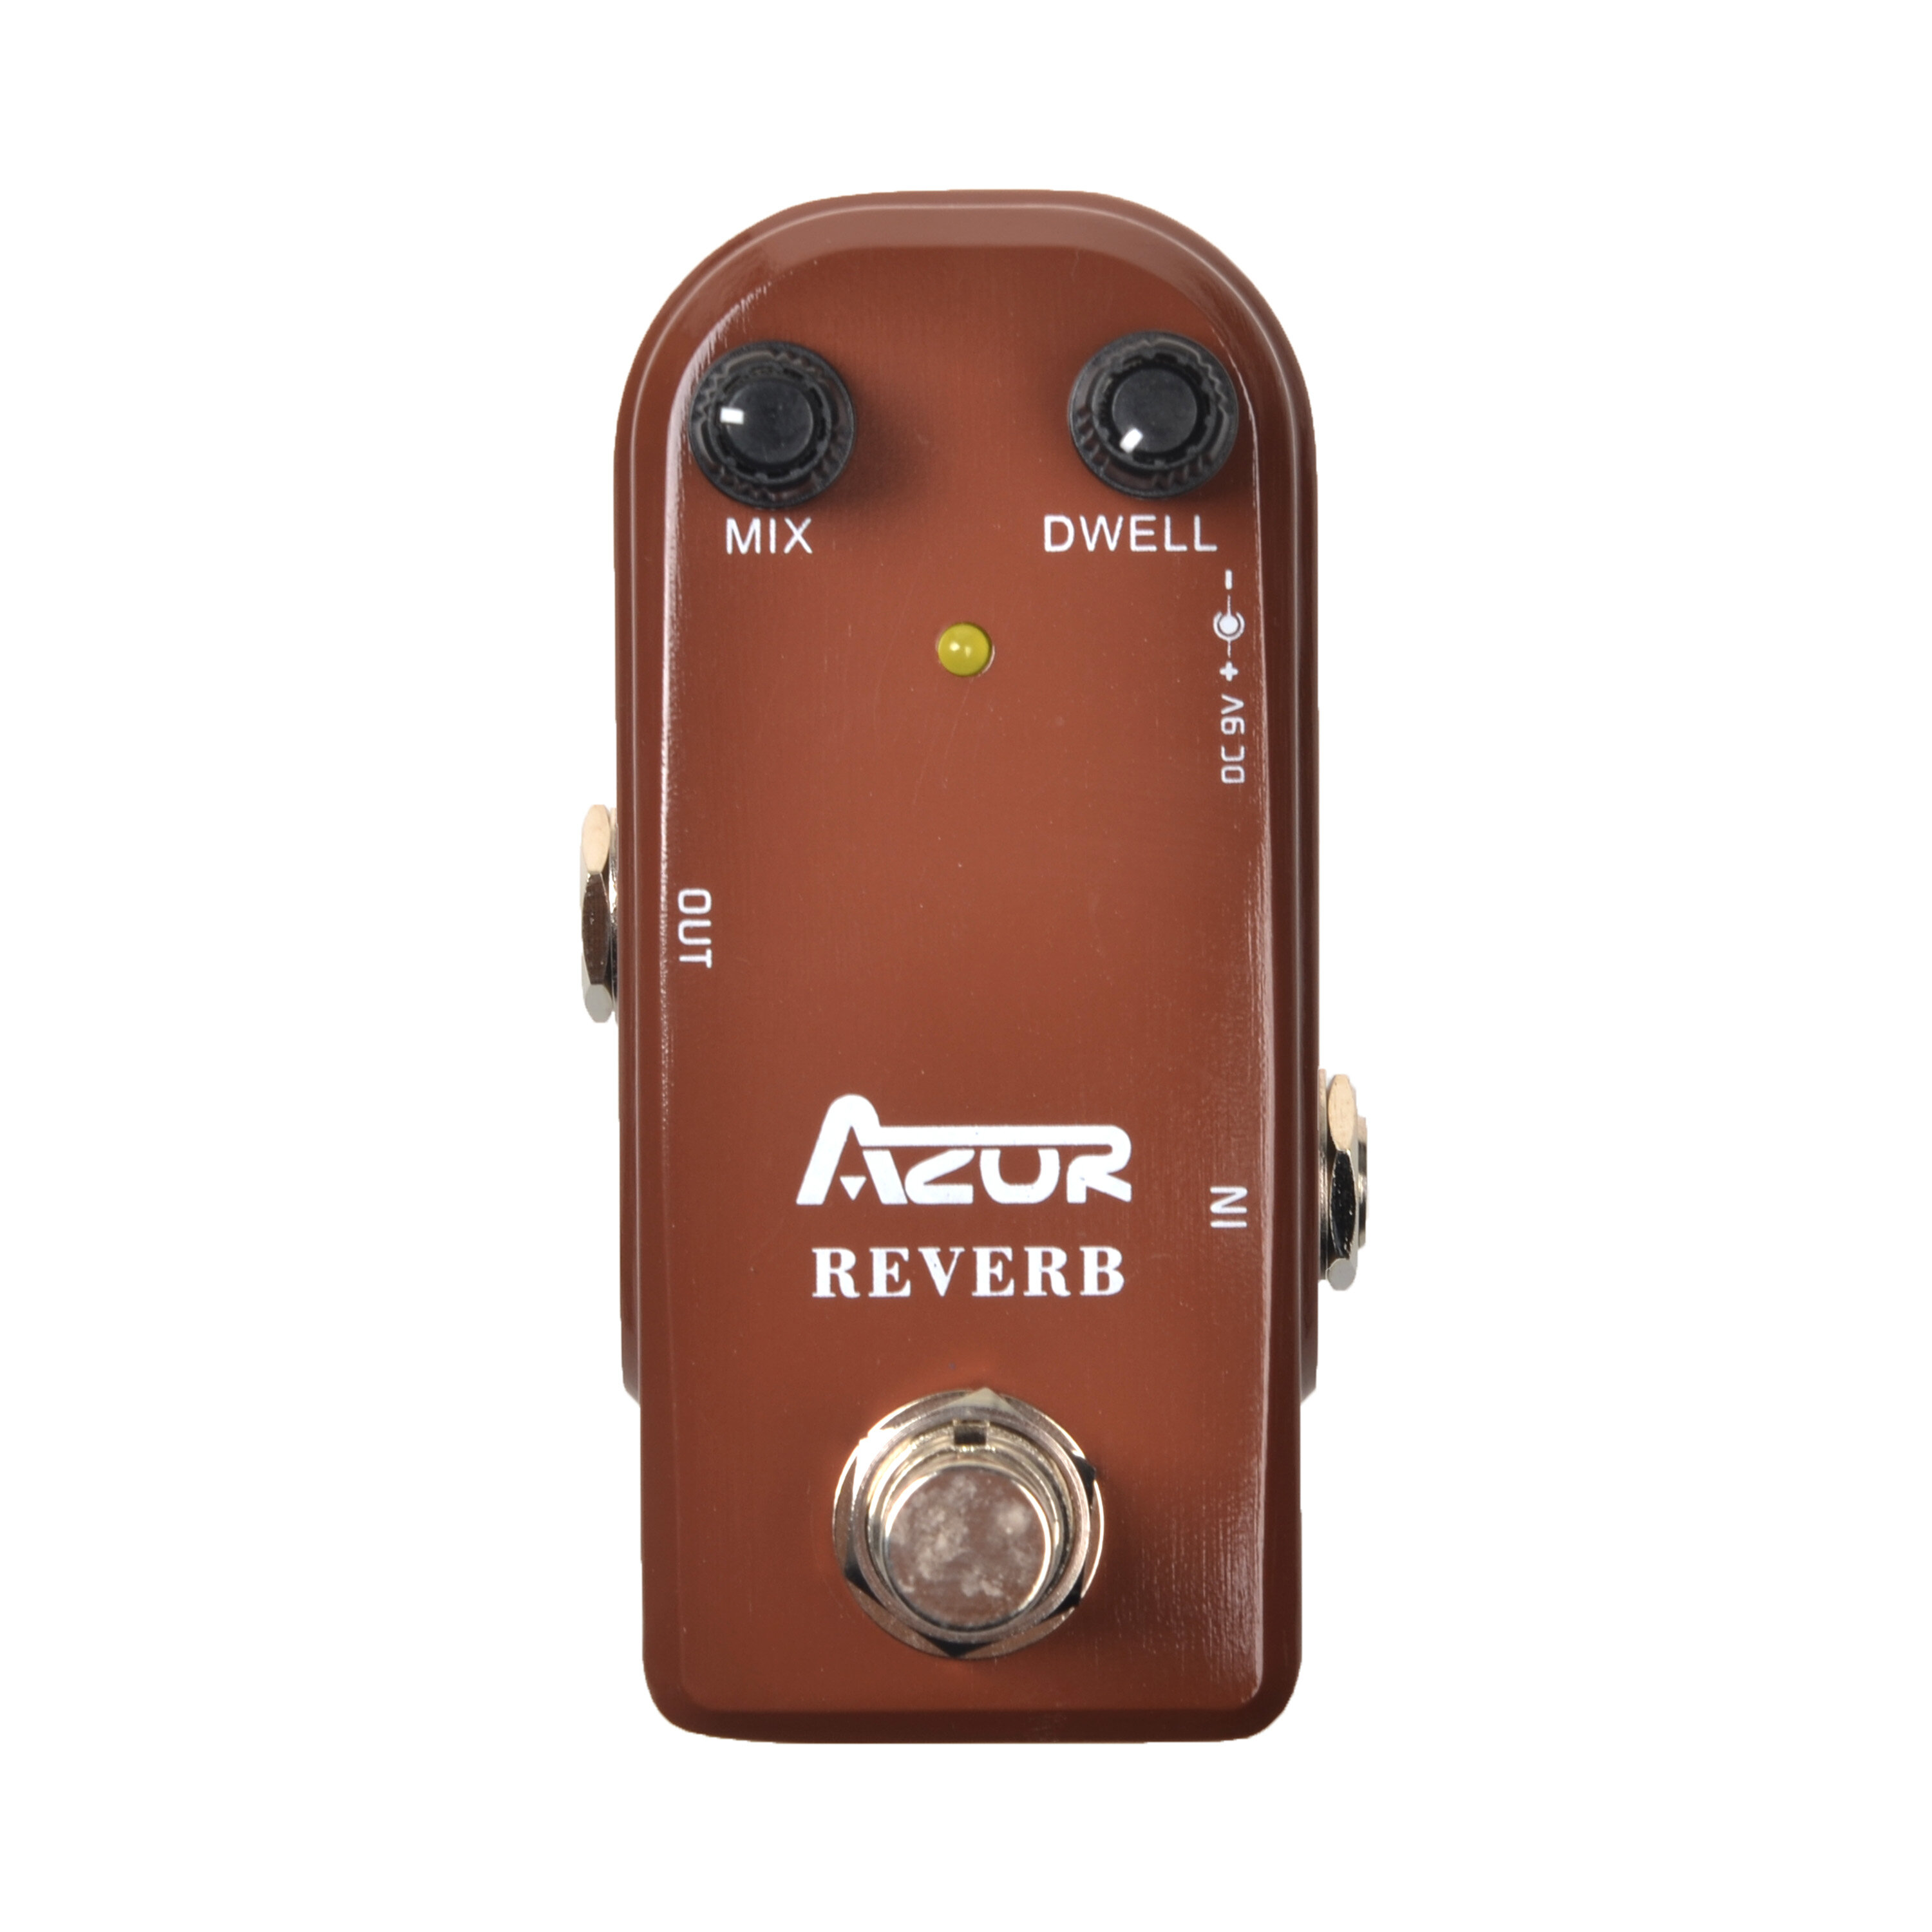 AZOR AP311 Reverb Mini Guitar Effect Pedal Reverb Mini Guitar Pedal 9V Guitar Parts Accessories Reverb Pedal Effect